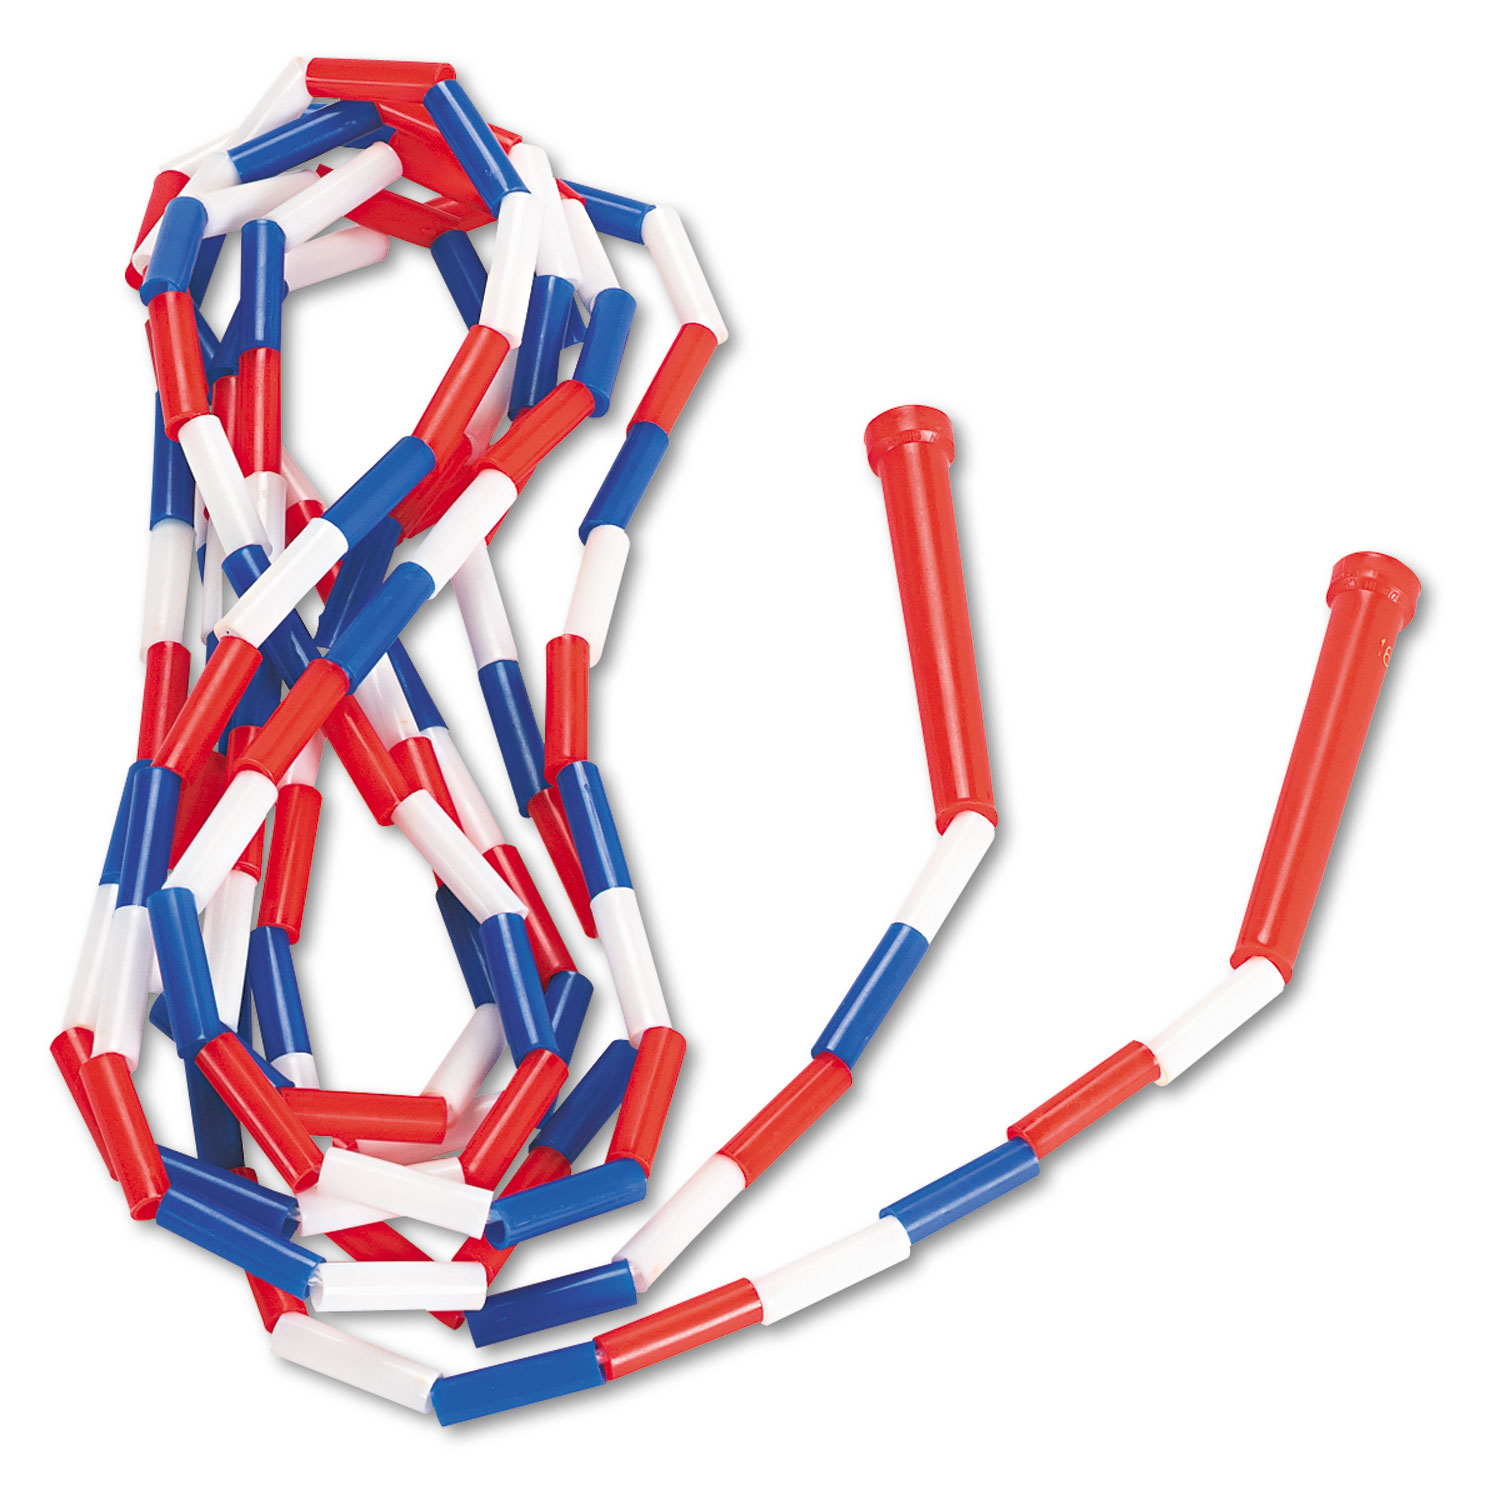 Segmented Plastic Jump Rope, 16ft, Red/Blue/White